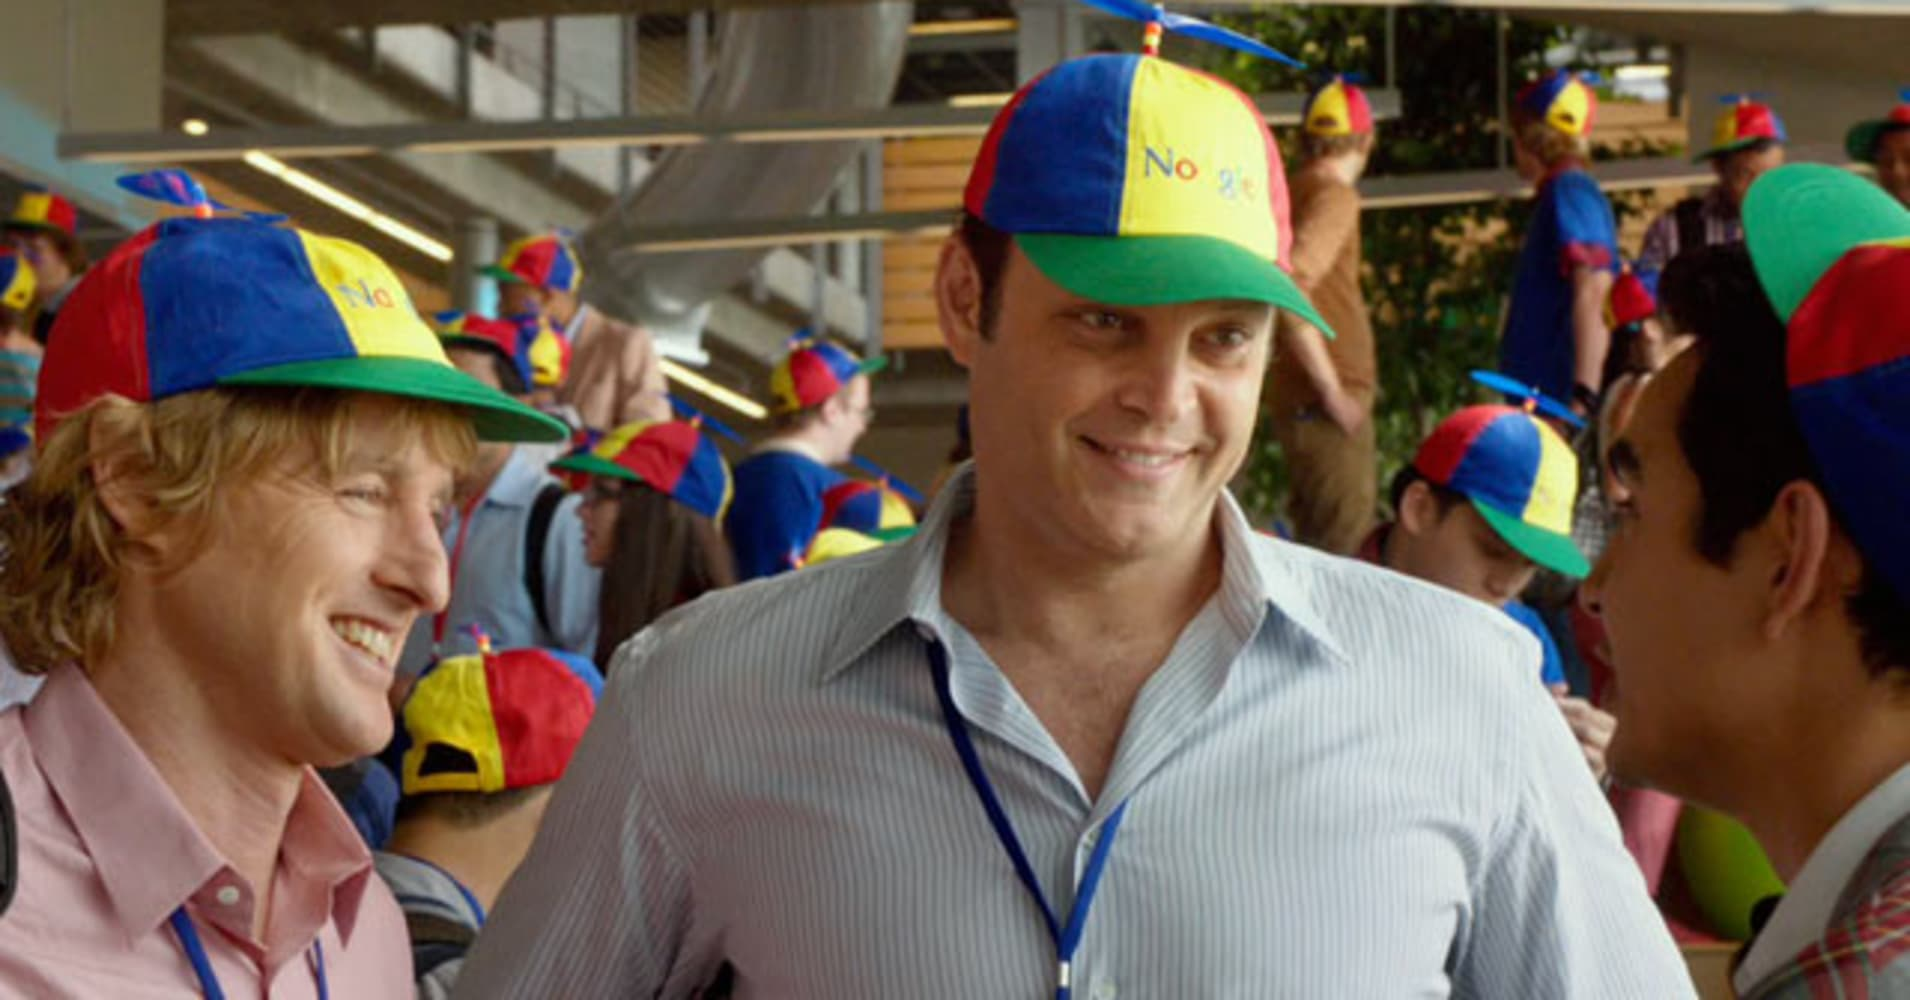 A scene starring Owen Wilson and Vince Vaughn in the Internship.